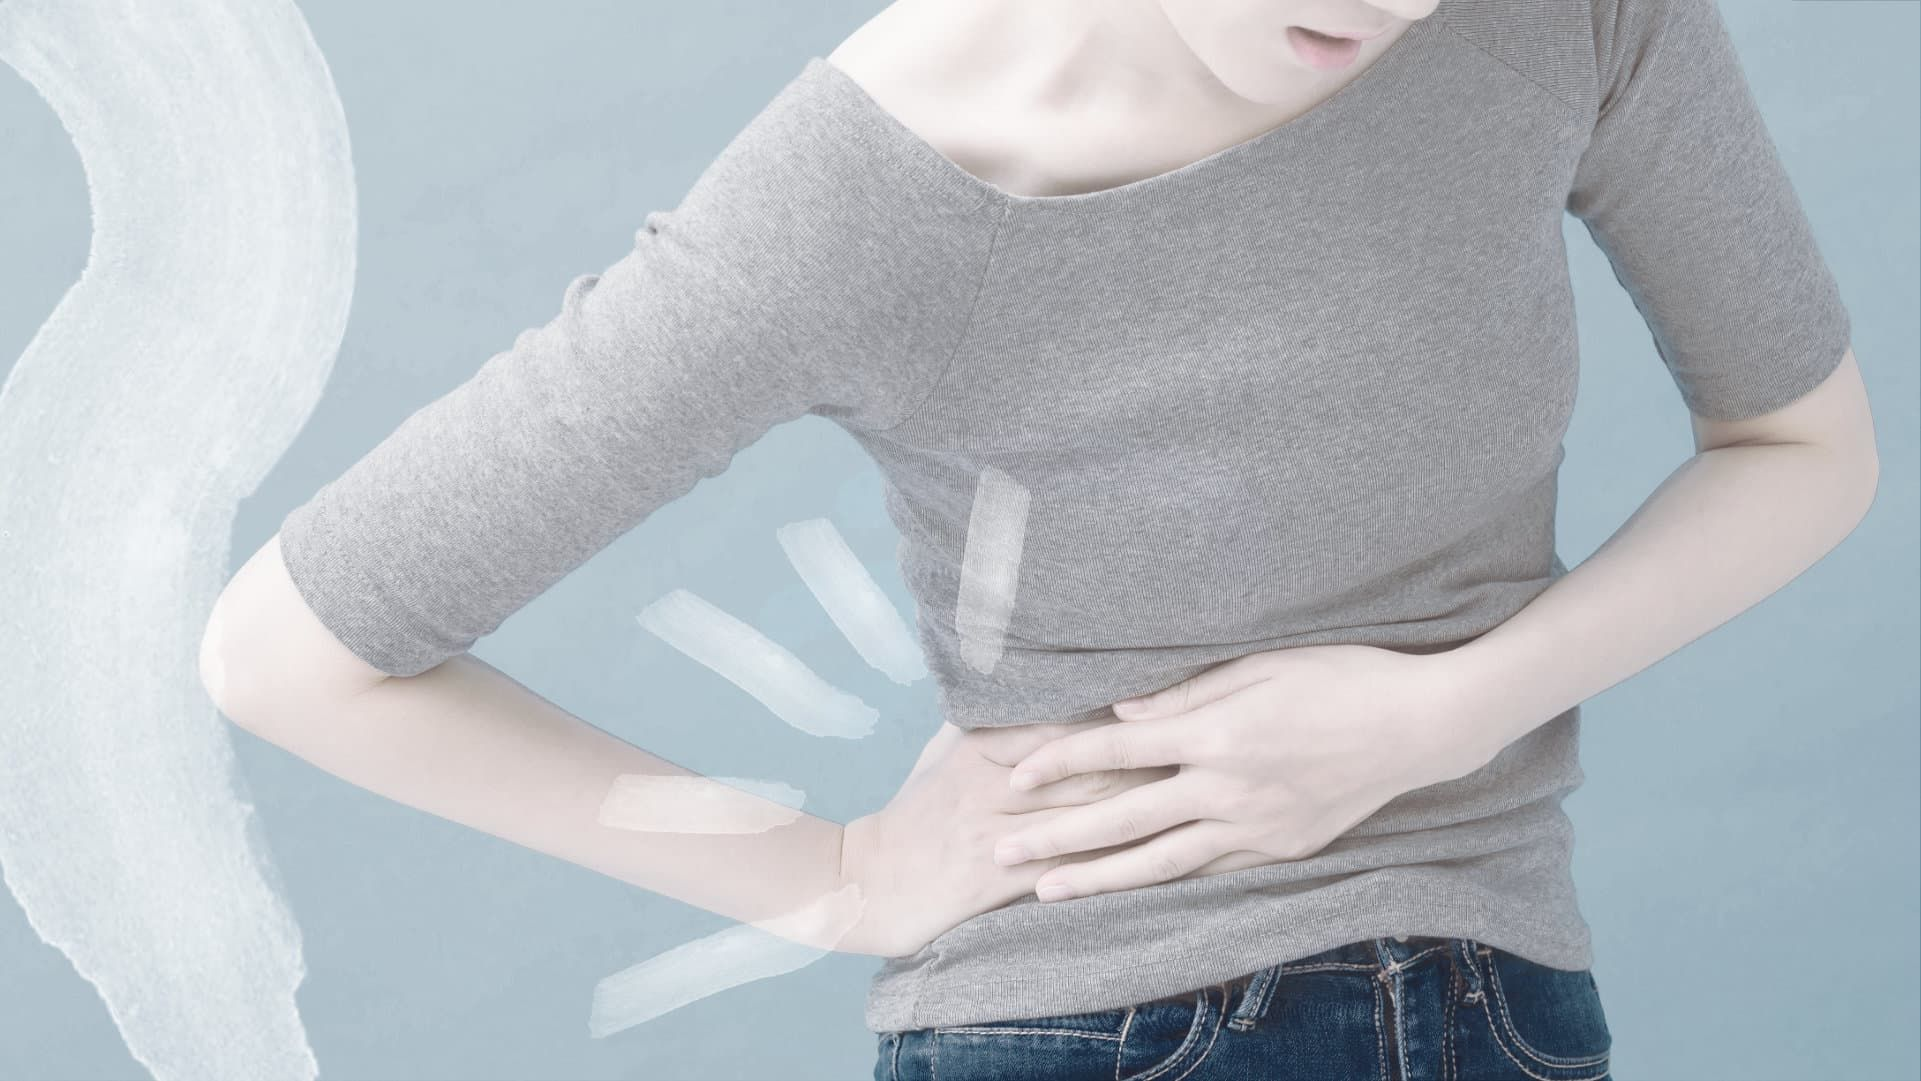 7 signs and symptoms of liver damage signs of liver